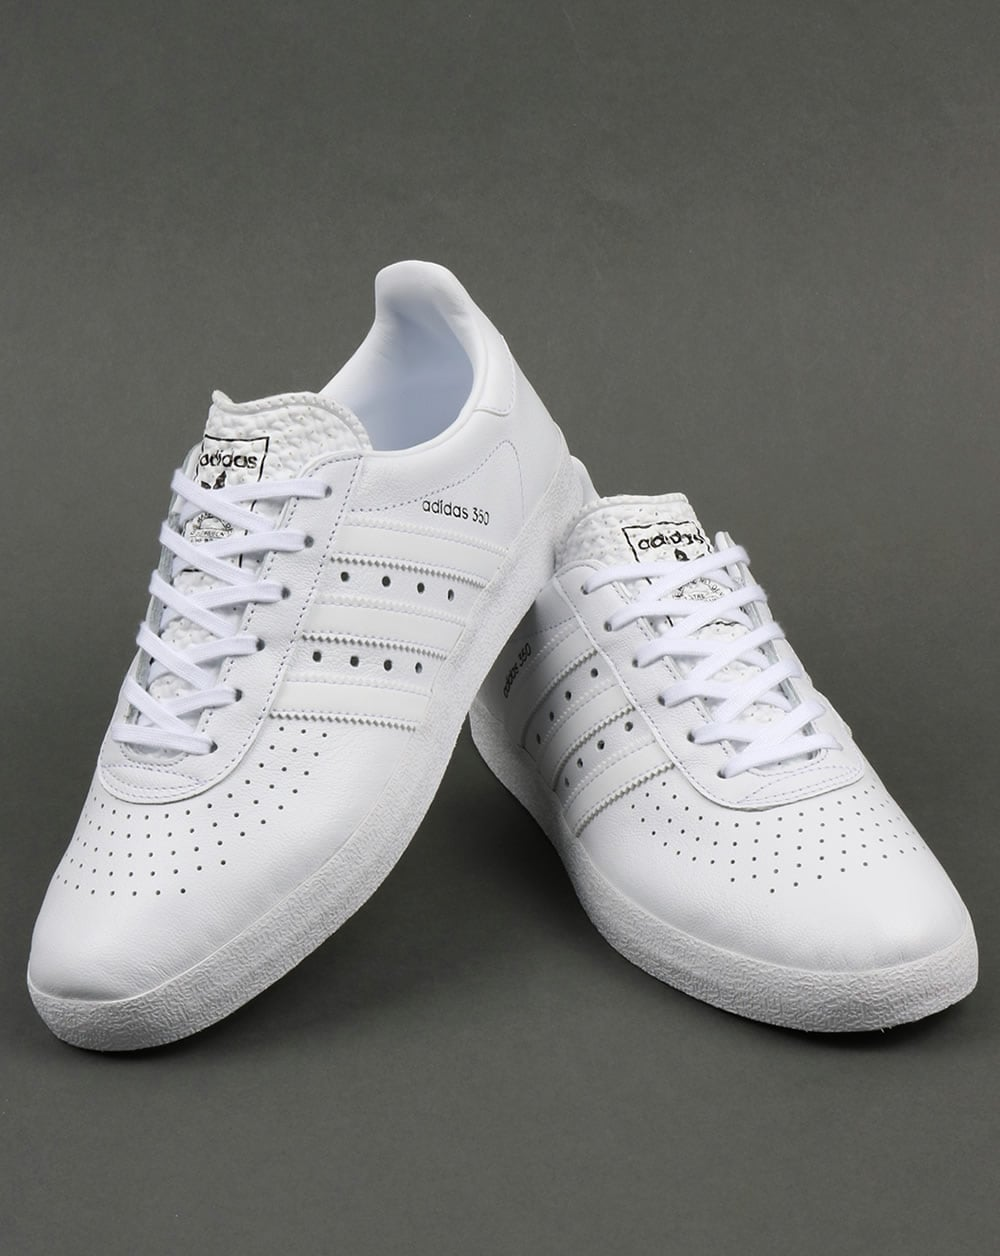 Adidas Shoes White Leather